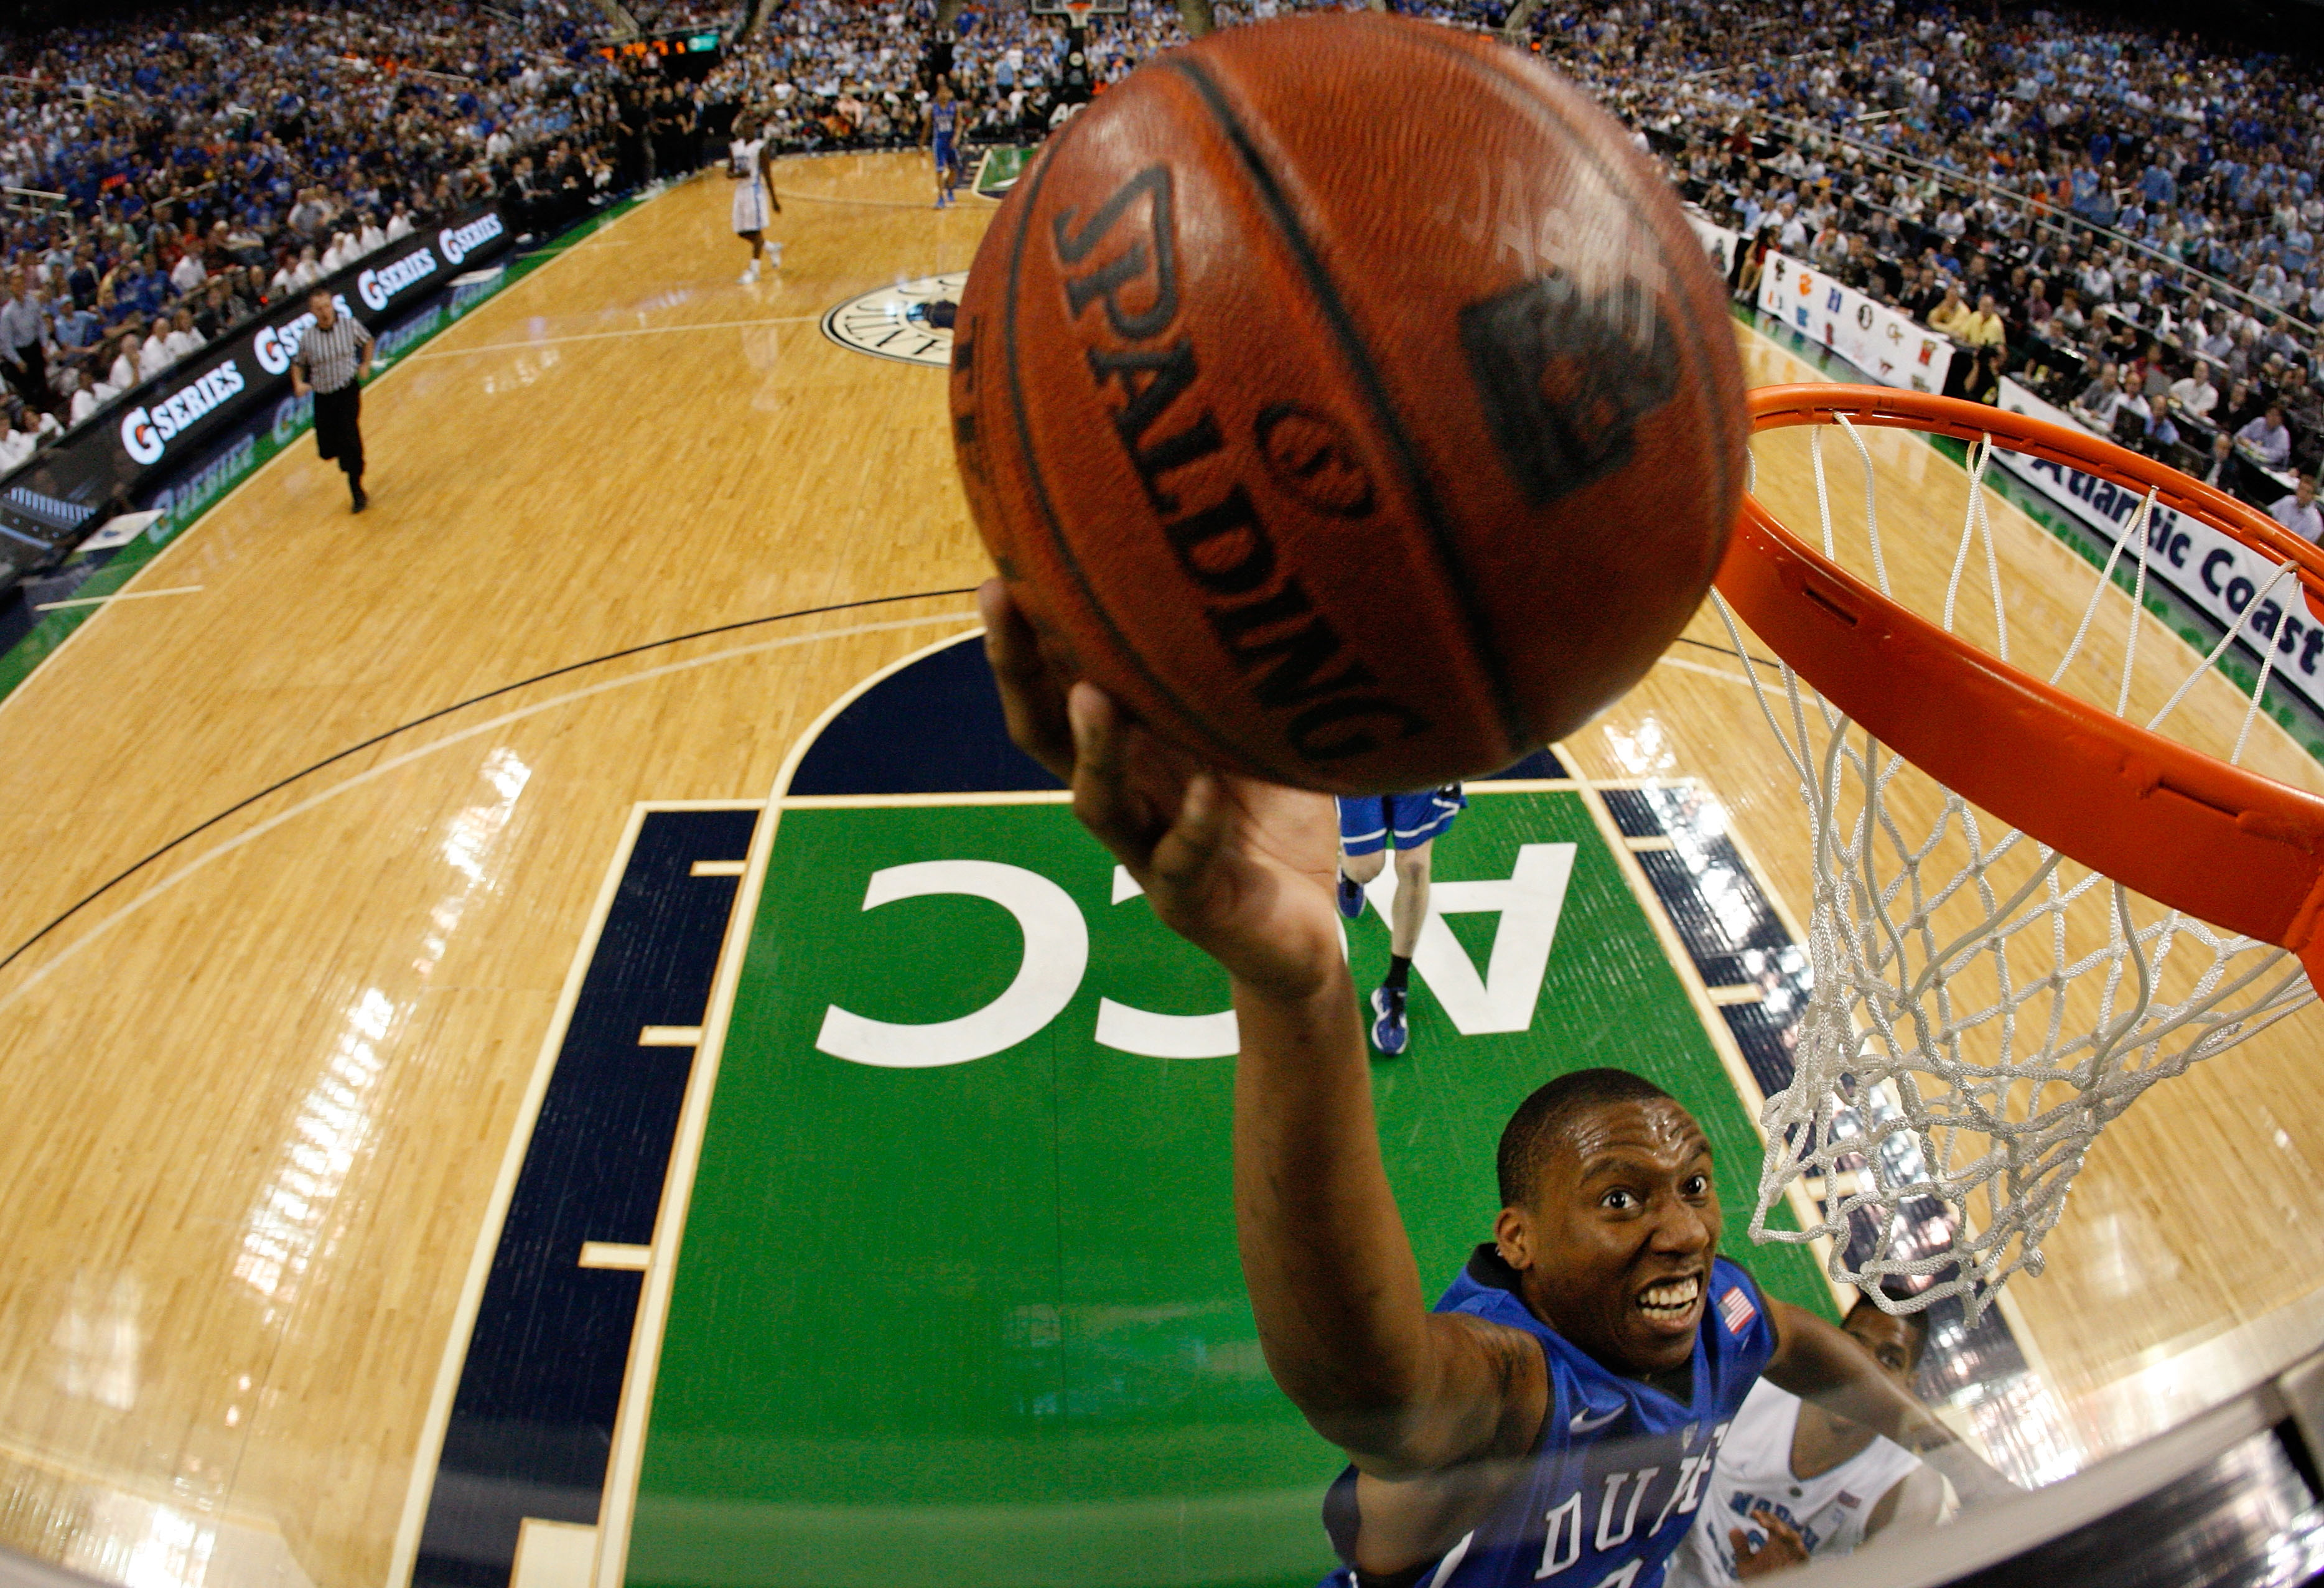 GREENSBORO, NC - MARCH 13: Nolan Smith #2 of the Duke Blue Devils shoots against the North Carolina Tar Heels in the championship game of the 2011 ACC men's basketball tournament at the Greensboro Coliseum on March 13, 2011 in Greensboro, North Carolina.